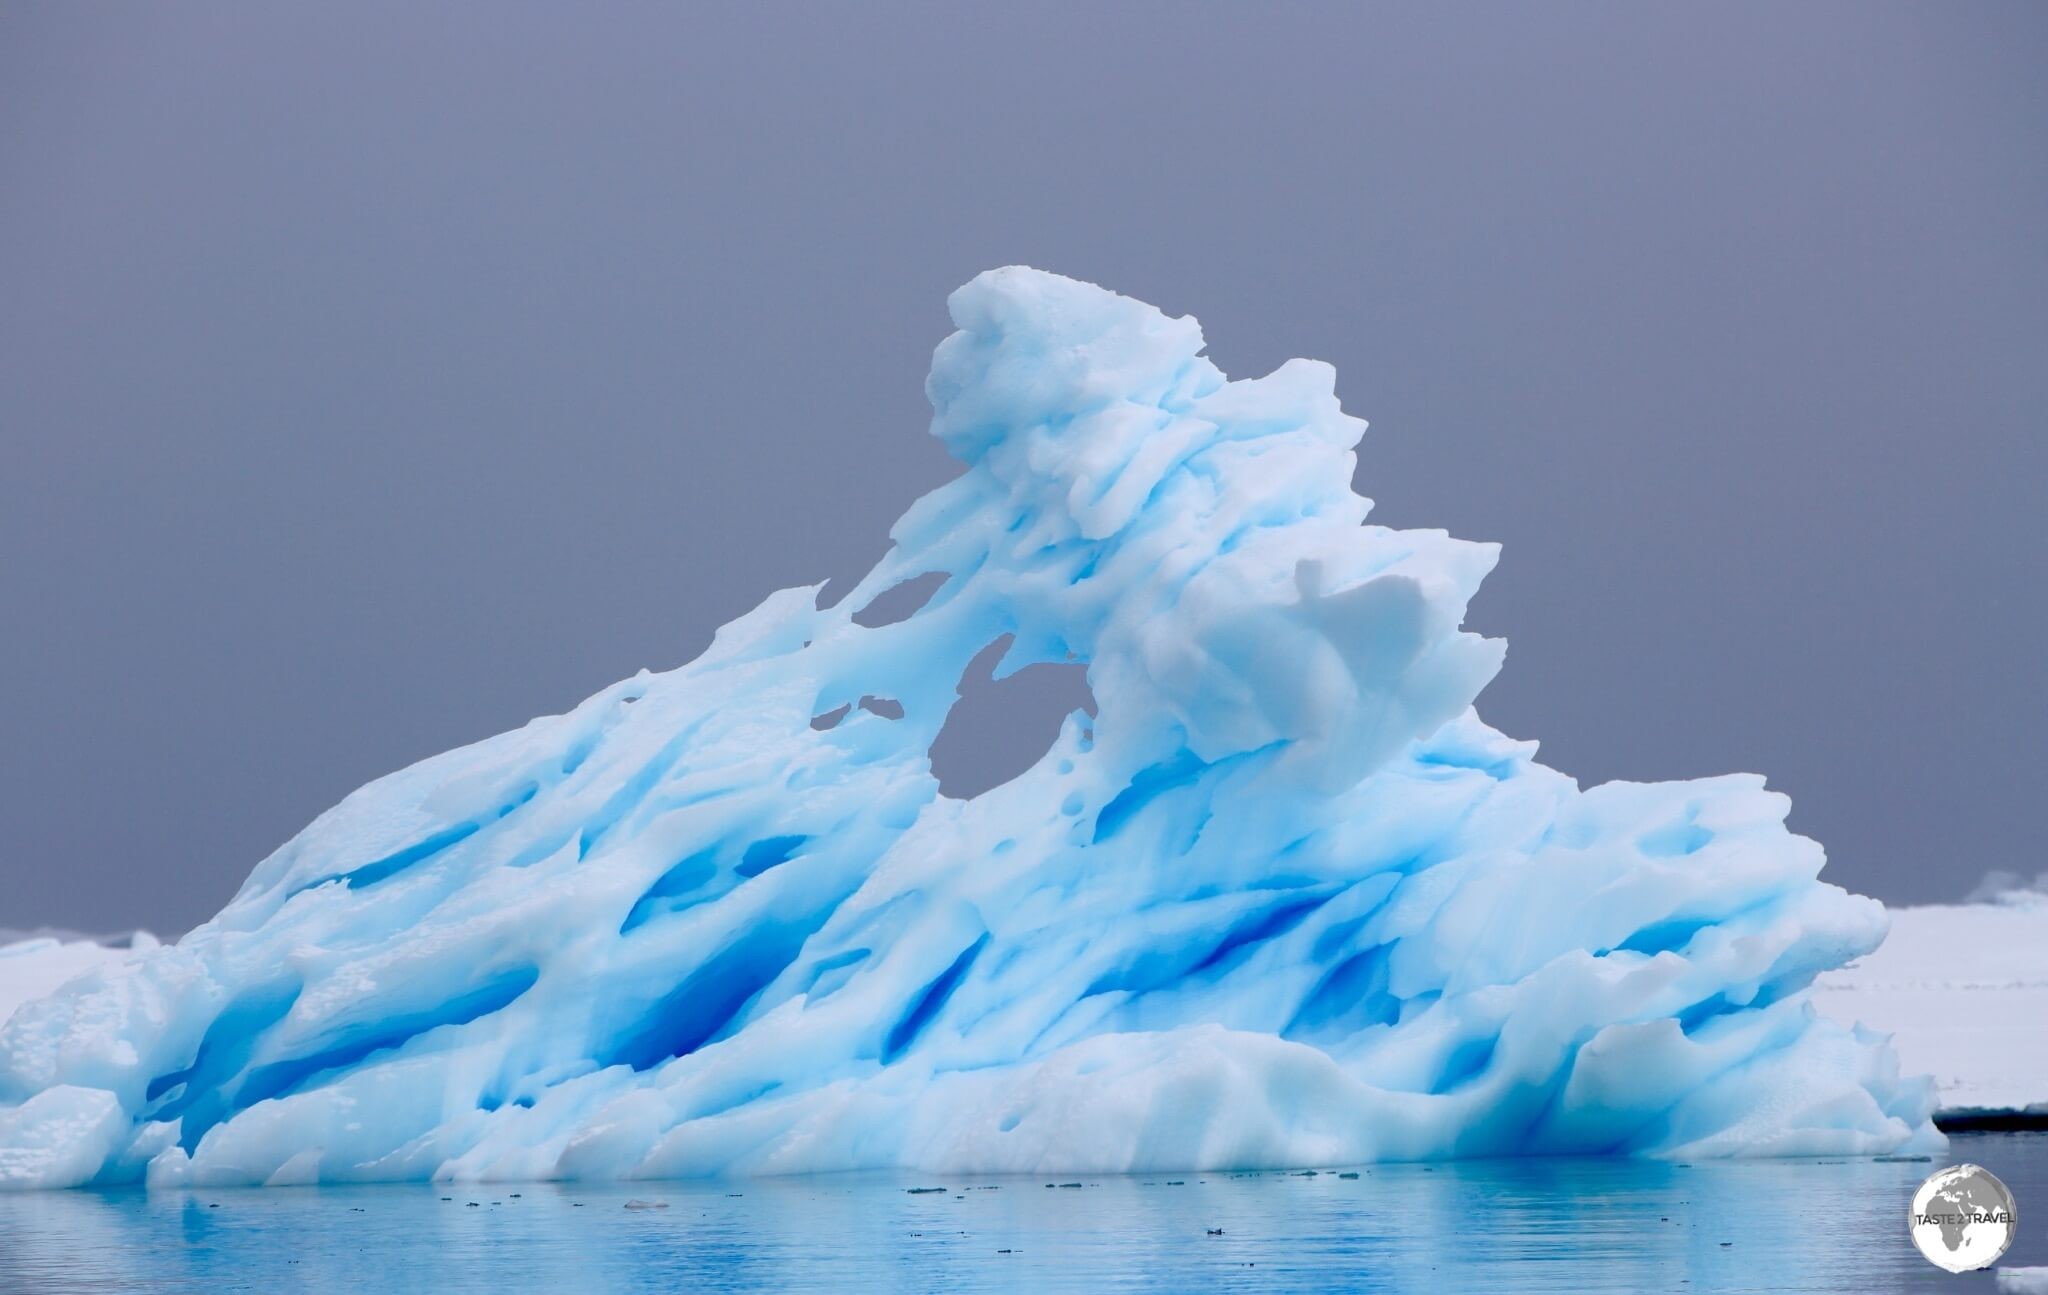 Dramatic ice formation on Crystal Sound, Antarctica.